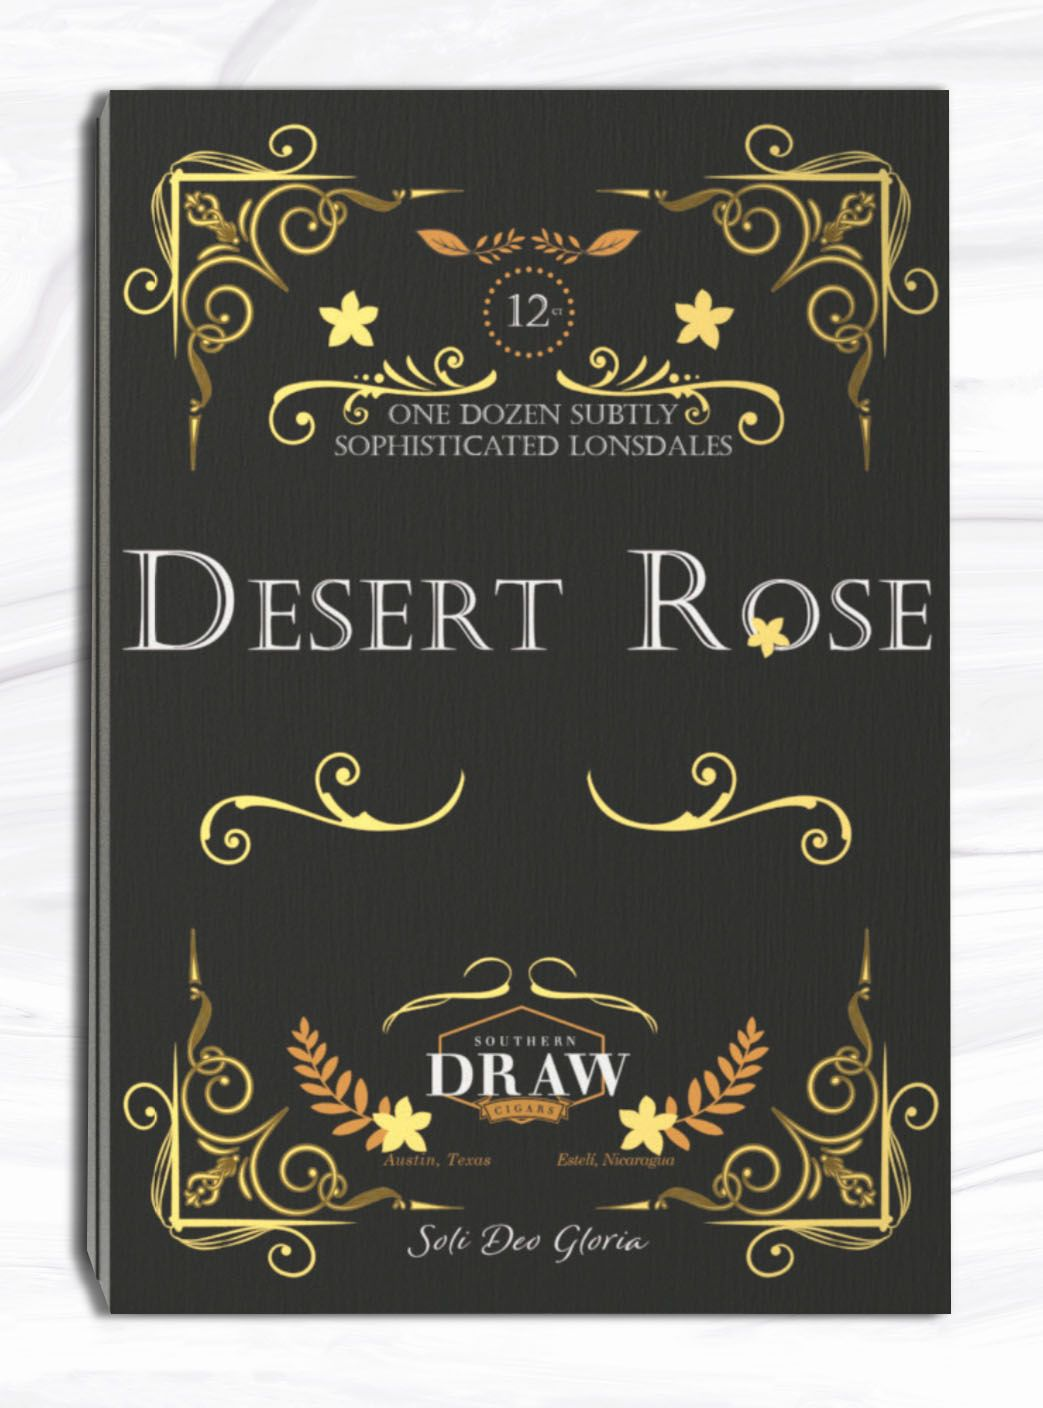 Cigar News: Southern Draw Cigars Expands Desert Rose with Lonsdale and Toro Offerings.